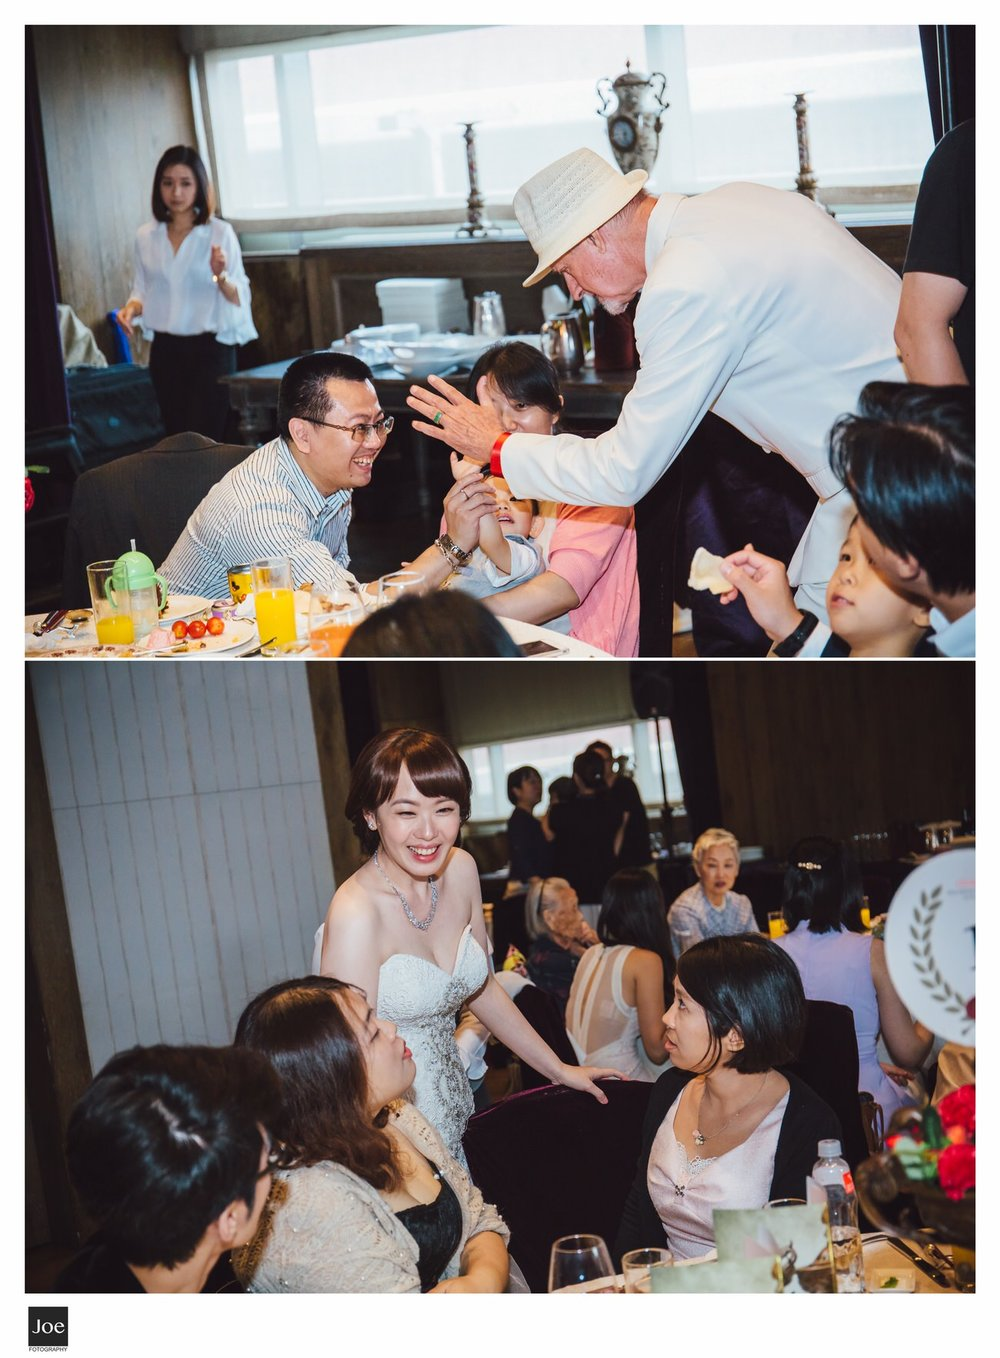 joe-fotography-wedding-photo-palais-de-chine-hotel-039.jpg